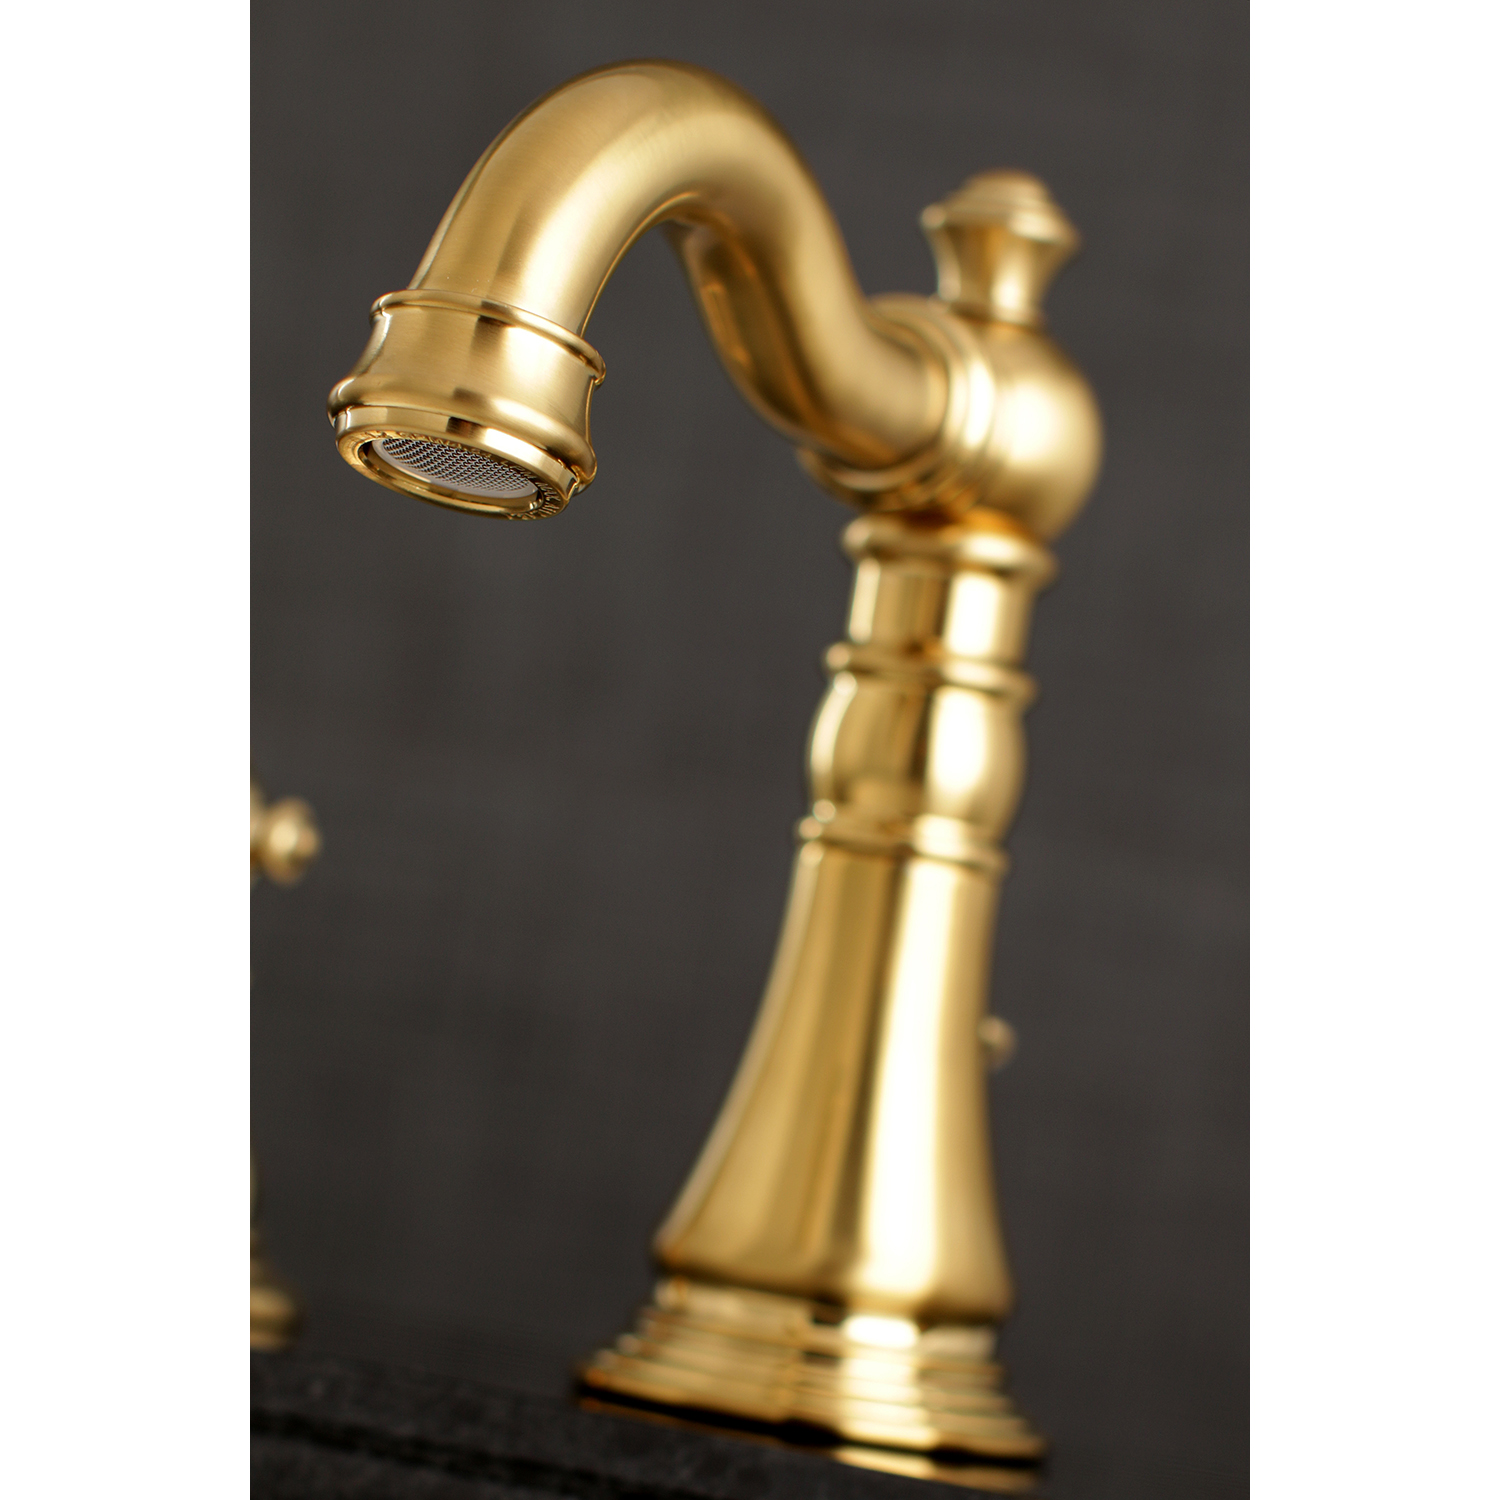 bathroom  Bathroom Design  bathroom faucets  Bathroom Remodelling. The benefits of brass bathroom fixtures   Kingston Brass